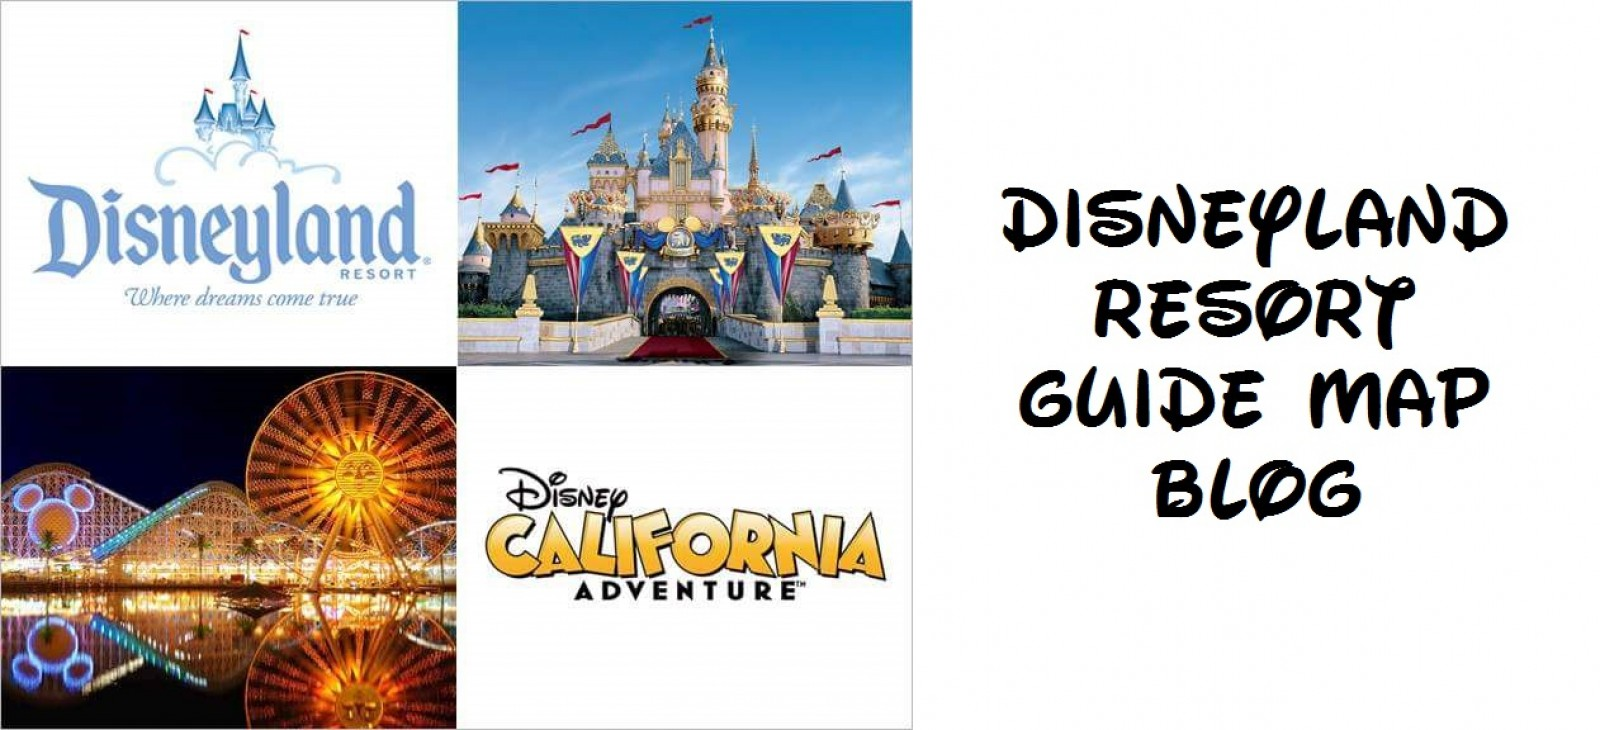 Disneyland Resort Guide Maps